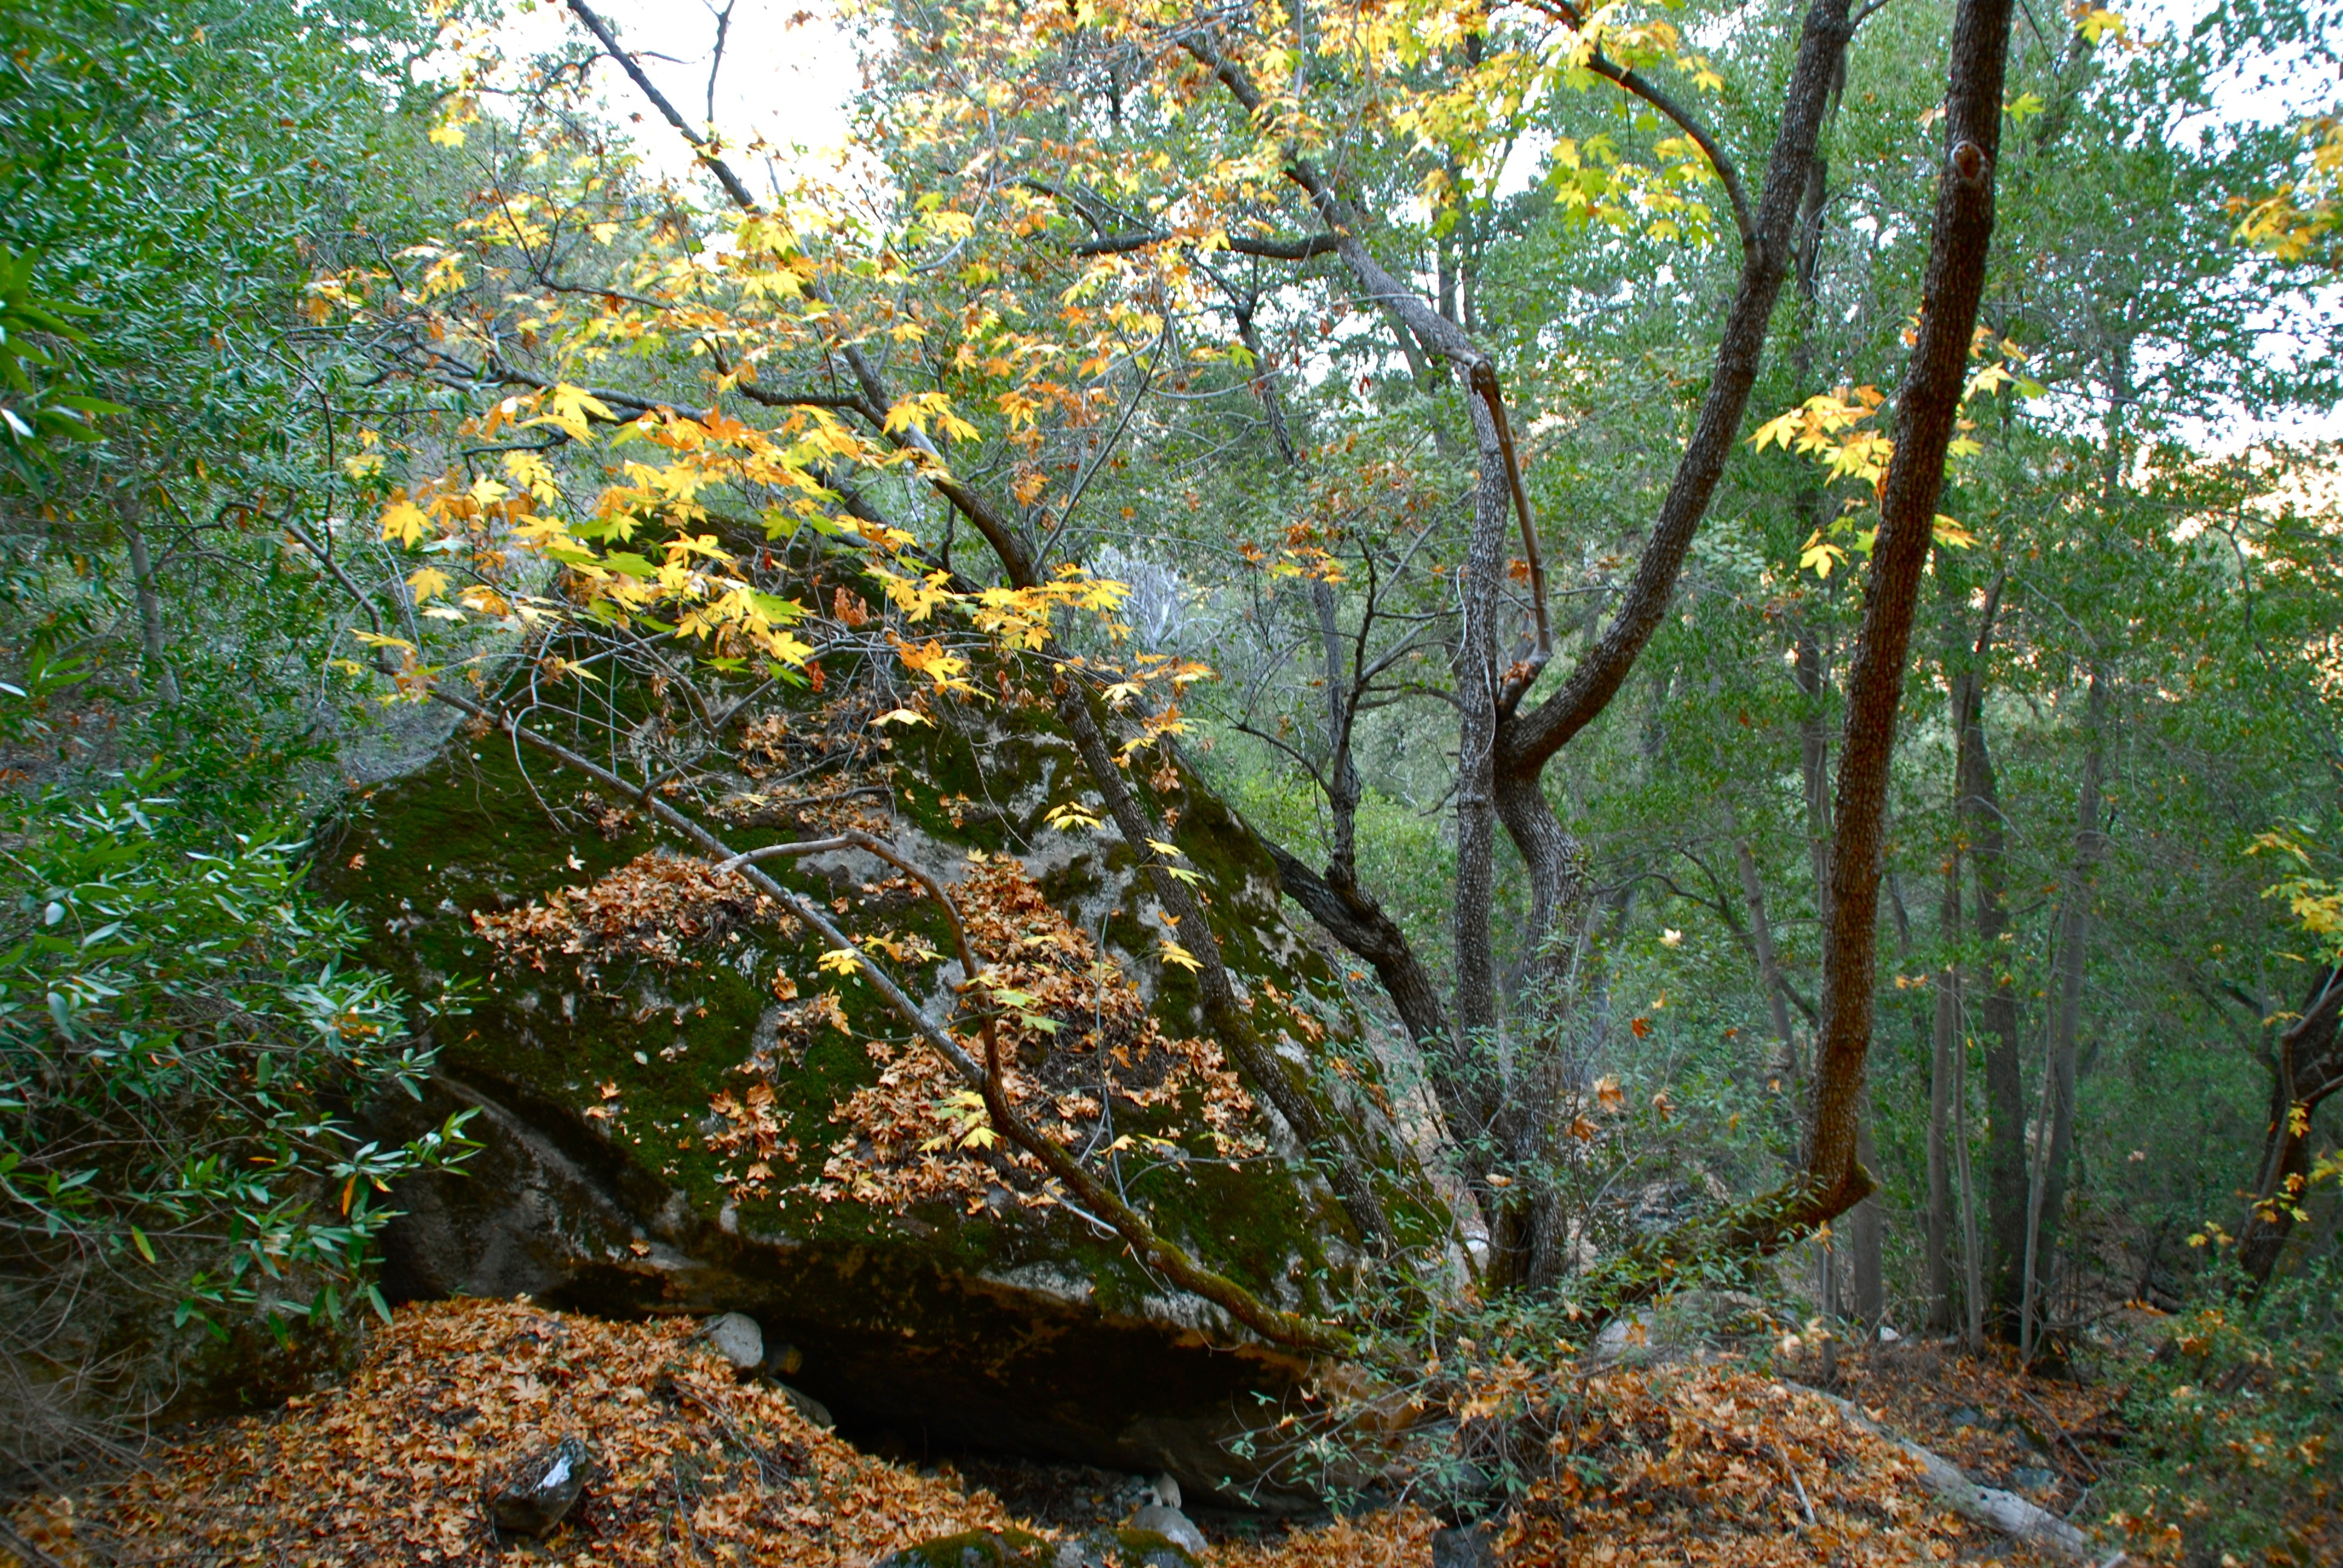 Sunday, November 12: Fall Colors in Fir Canyon